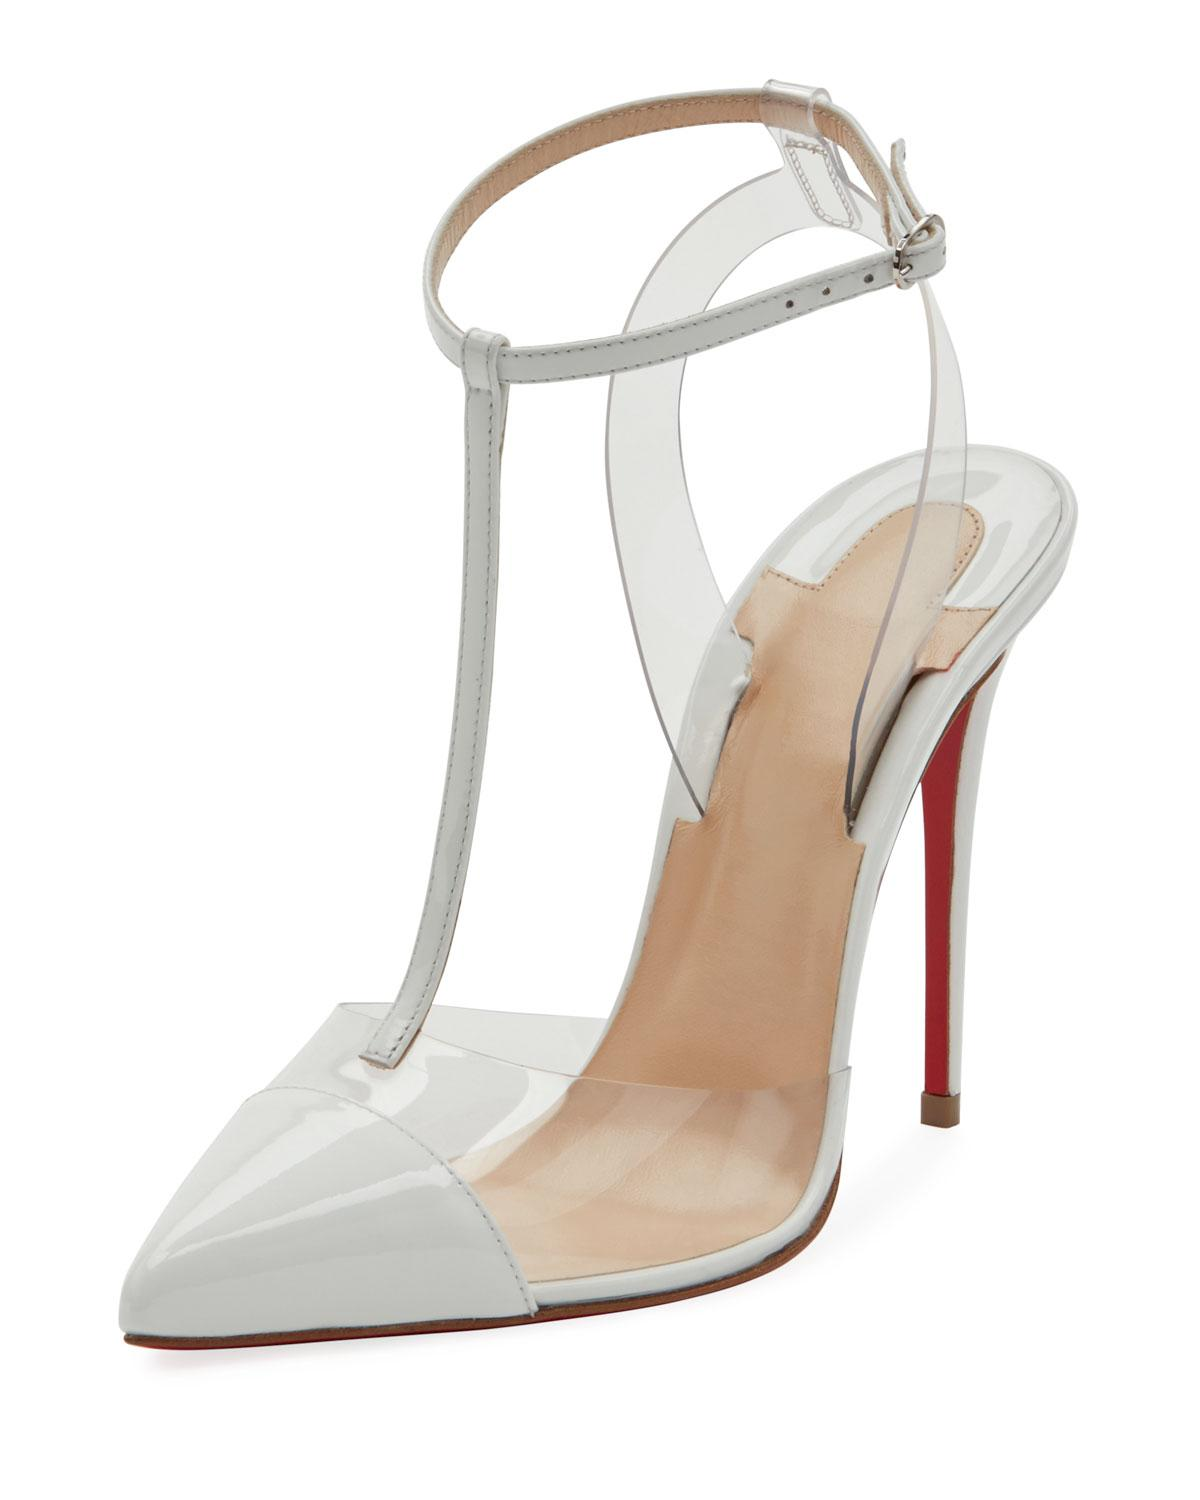 8abffcc85748 Lyst - Christian Louboutin Nosy T-strap Red Sole Pumps